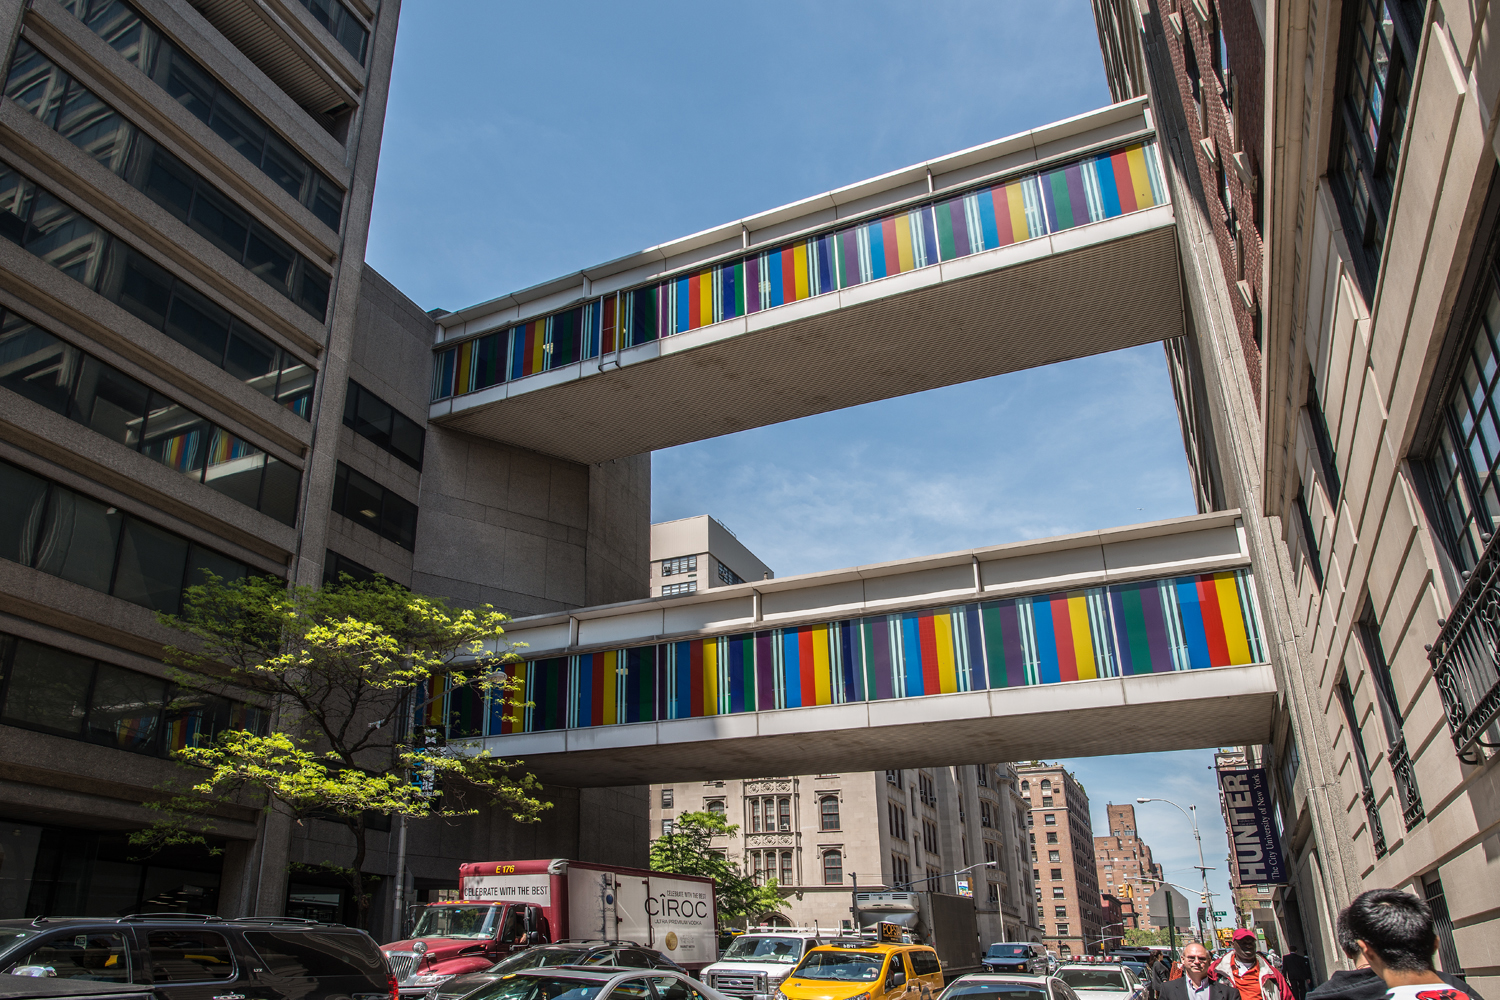 Bayadères for Two Skywalks by Daniel Buren, Hunter College